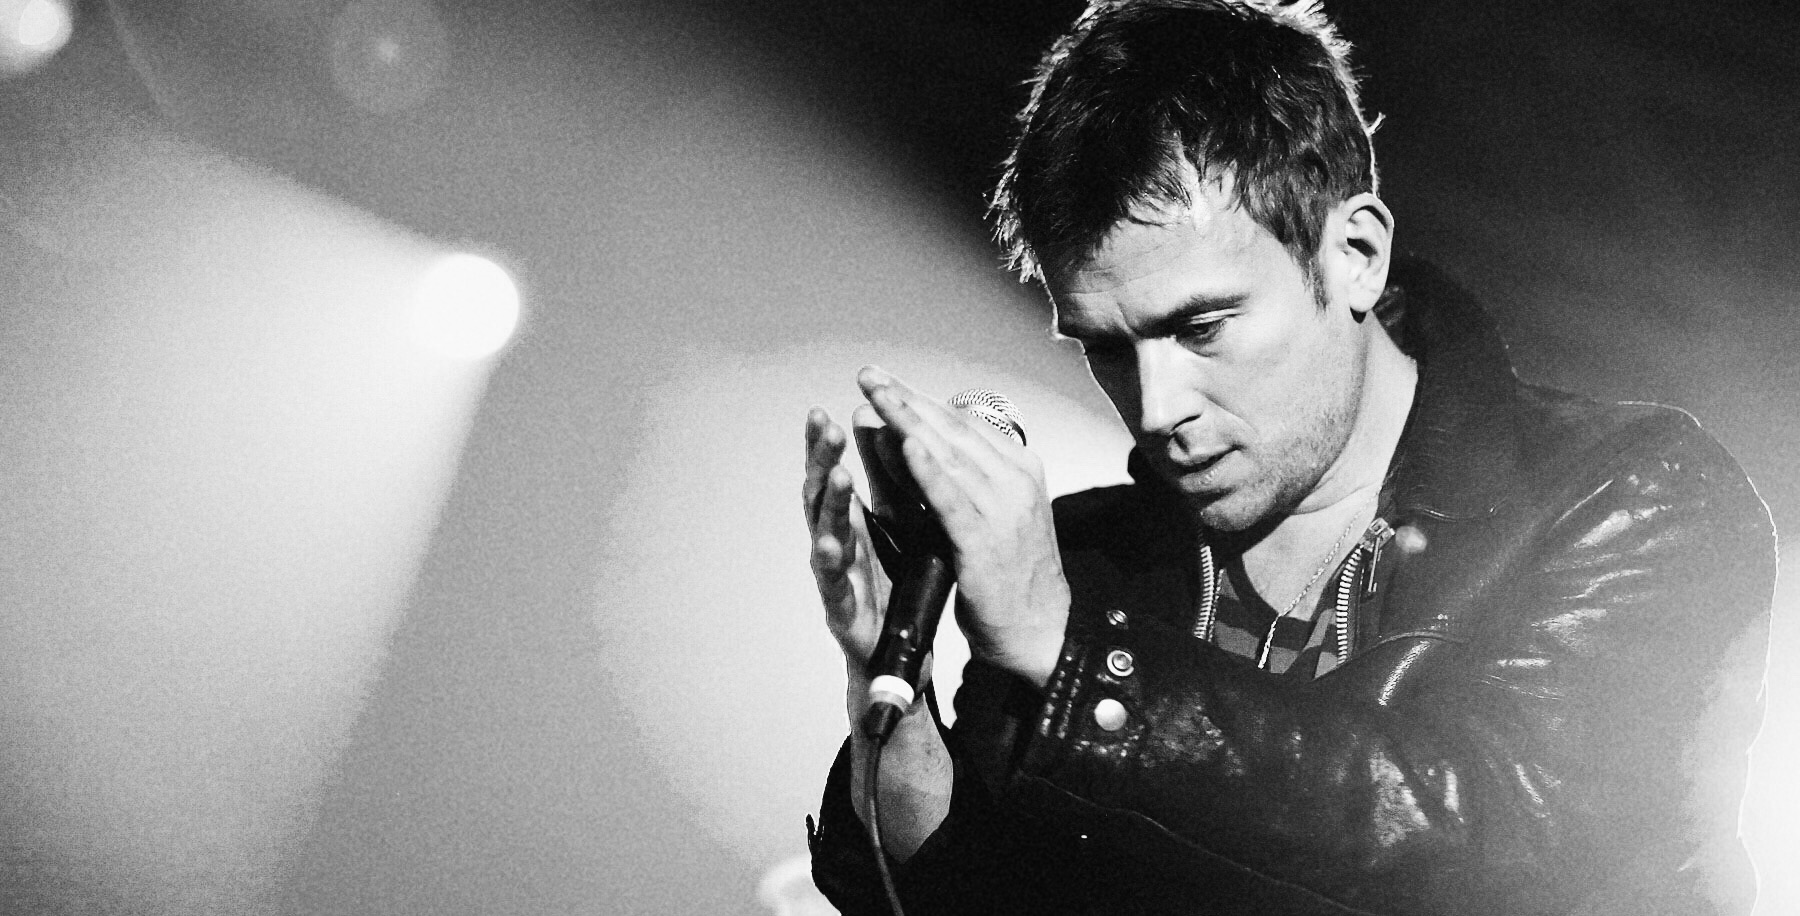 "Singer Damon Albarn - also known as frontman of the band Blur - of the British band Gorillaz performs live during a concert at the Velodrom in Berlin, Germany on November 21, 2010. The concert is part of the ""Escape to Plastic Beach World Tour 2010"" and promotes the current album ""Plastic Beach"". Photo: Monique Wuestenhagen Processed with VSCOcam with b1 preset"